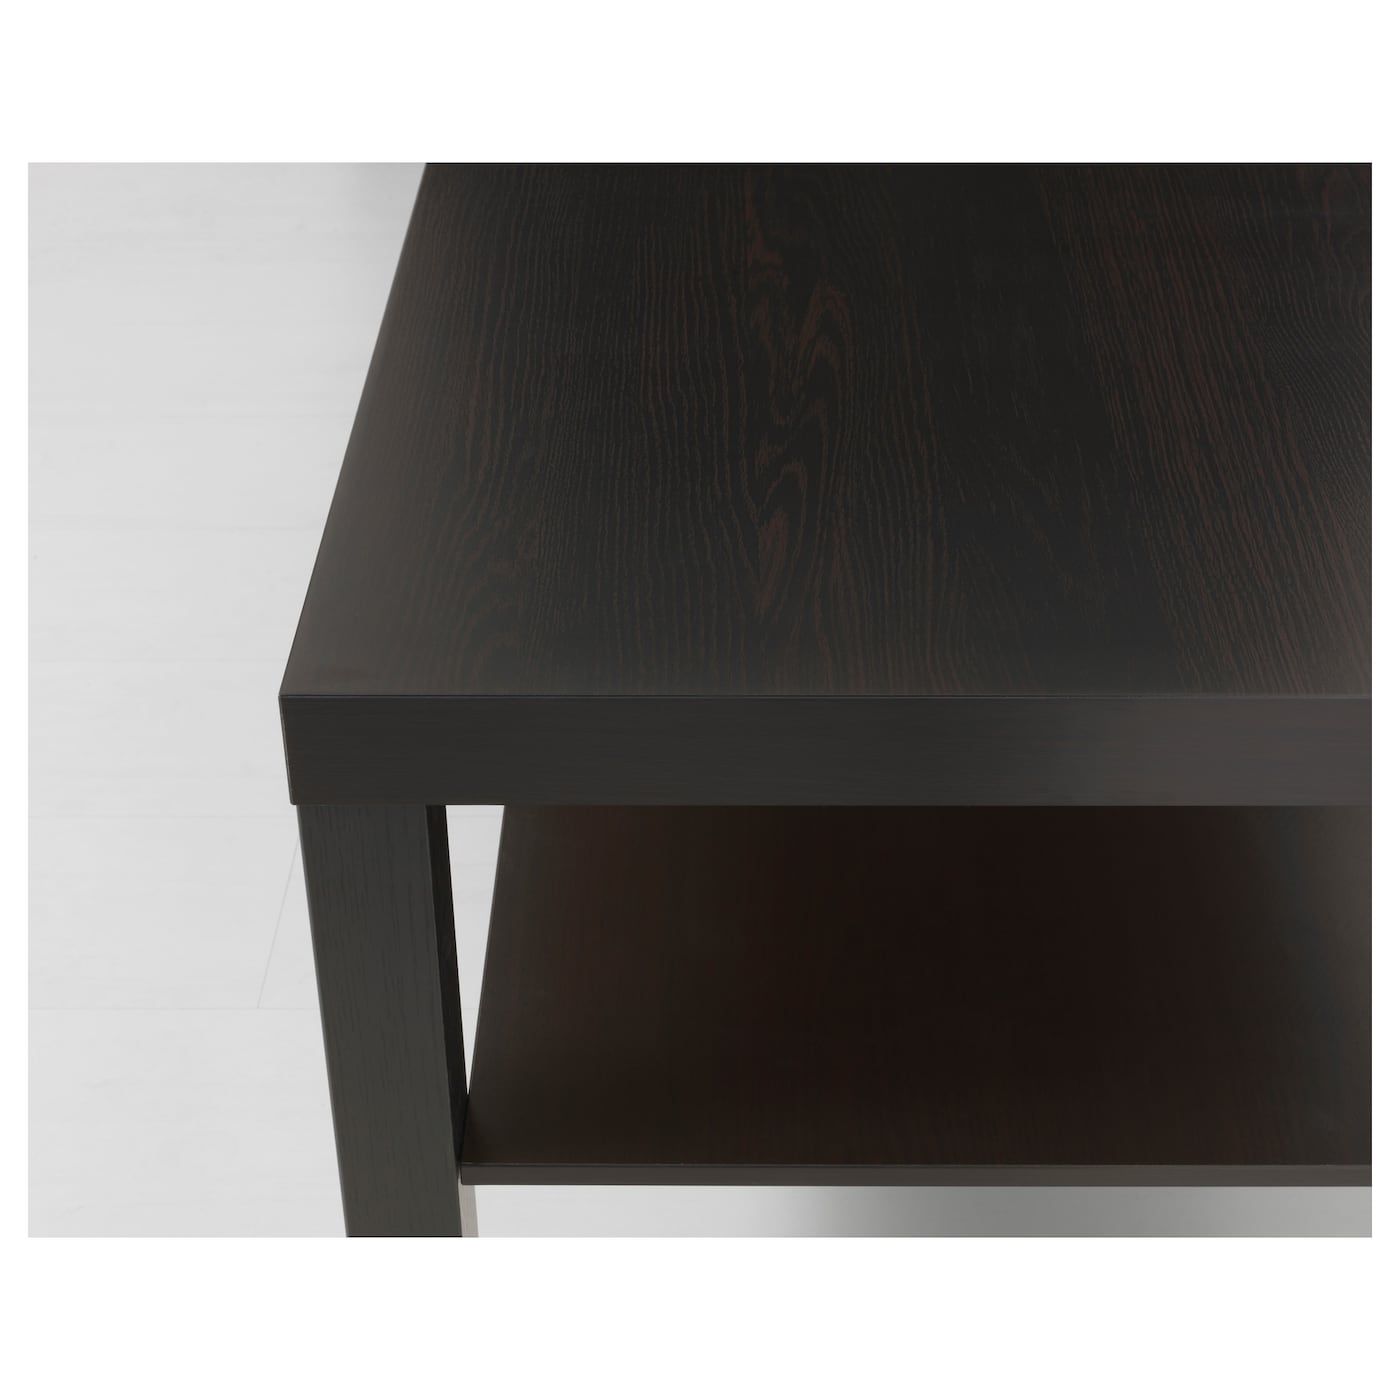 Lack table basse brun noir 90x55 cm ikea - Ikea table noire ...